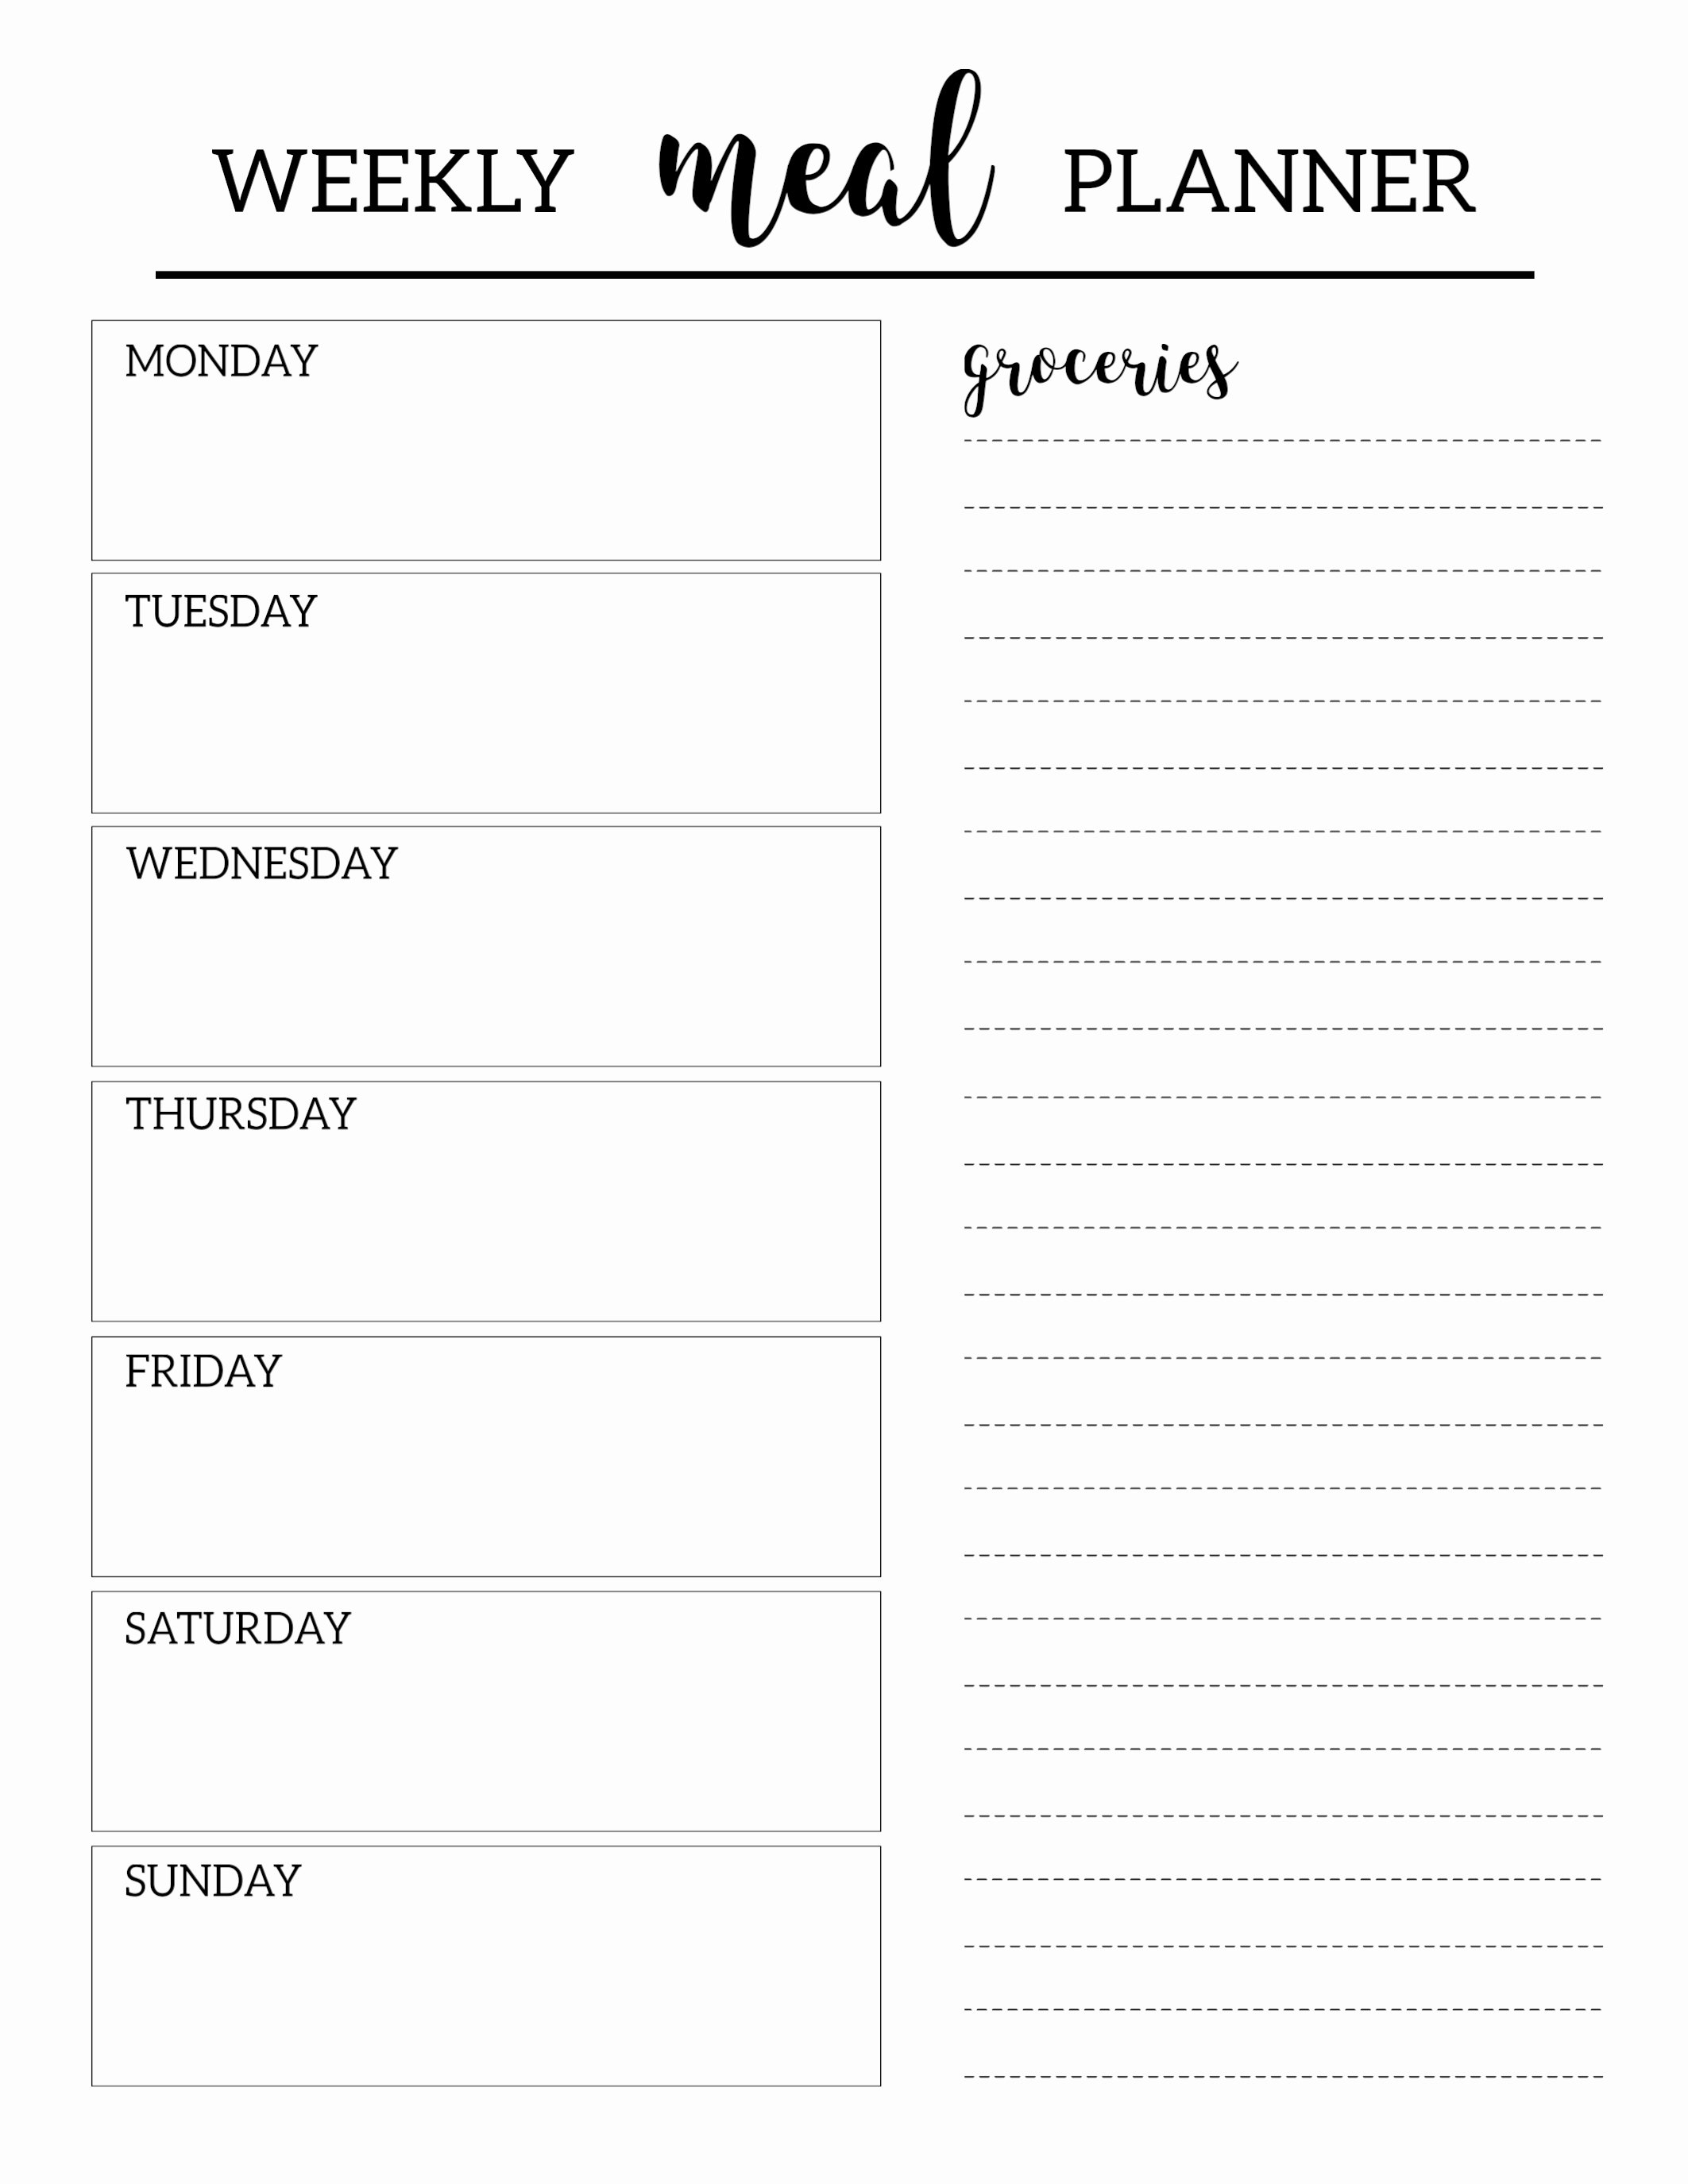 Meal Plan Spreadsheet Template Inspirational Free Printable Meal Planner Template Paper Trail Design